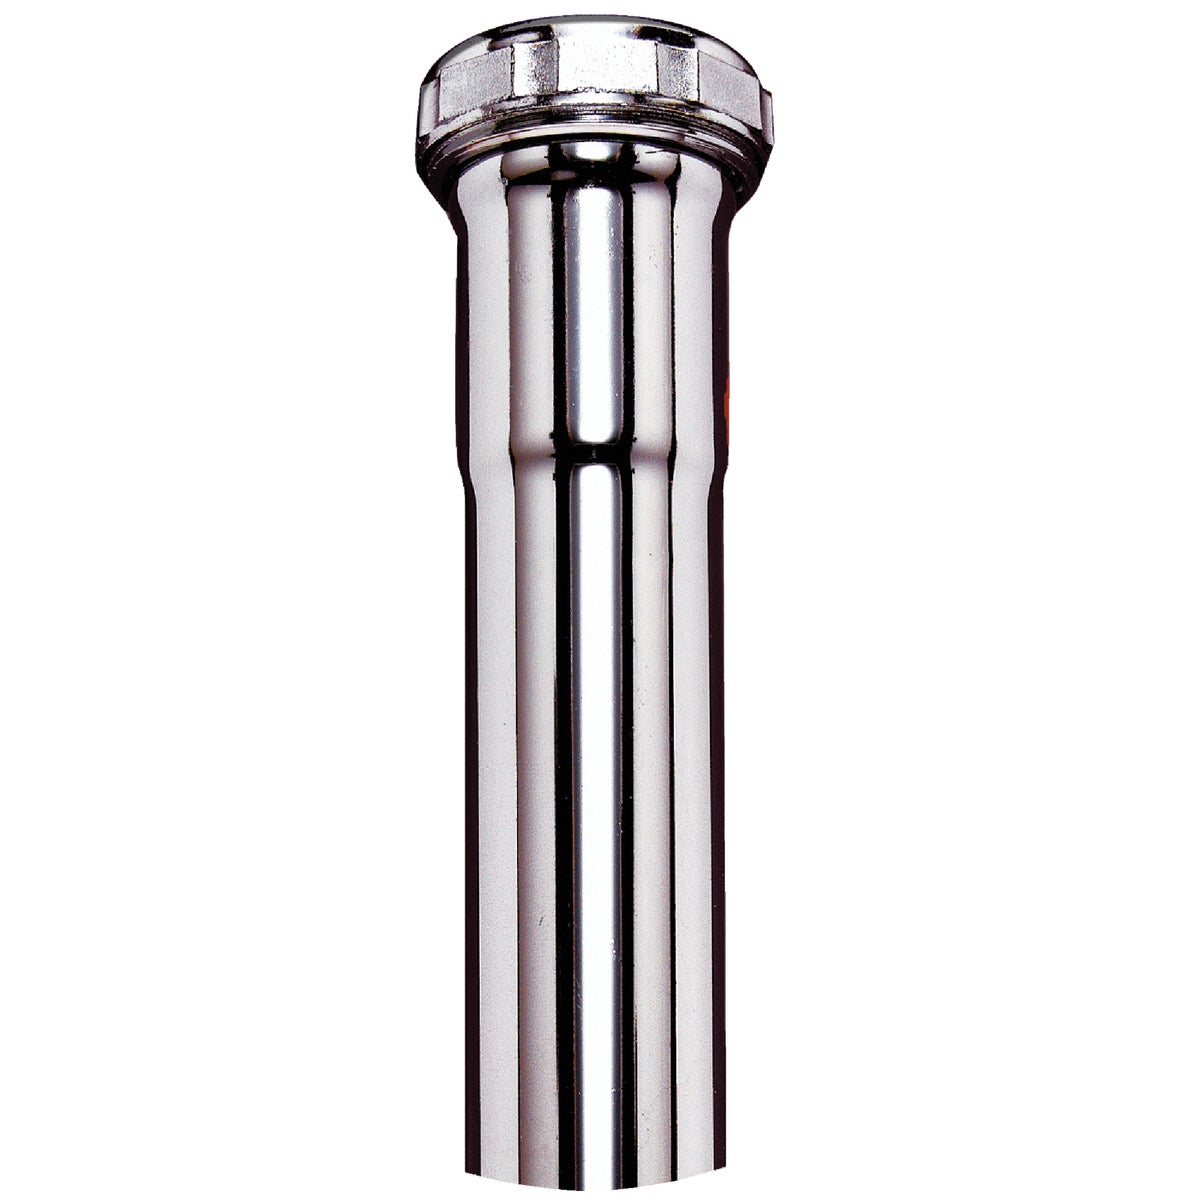 1-1/4X8 22GA SJ EXT TUBE - 1669PCU by Plumb Pak/keeney Mfg